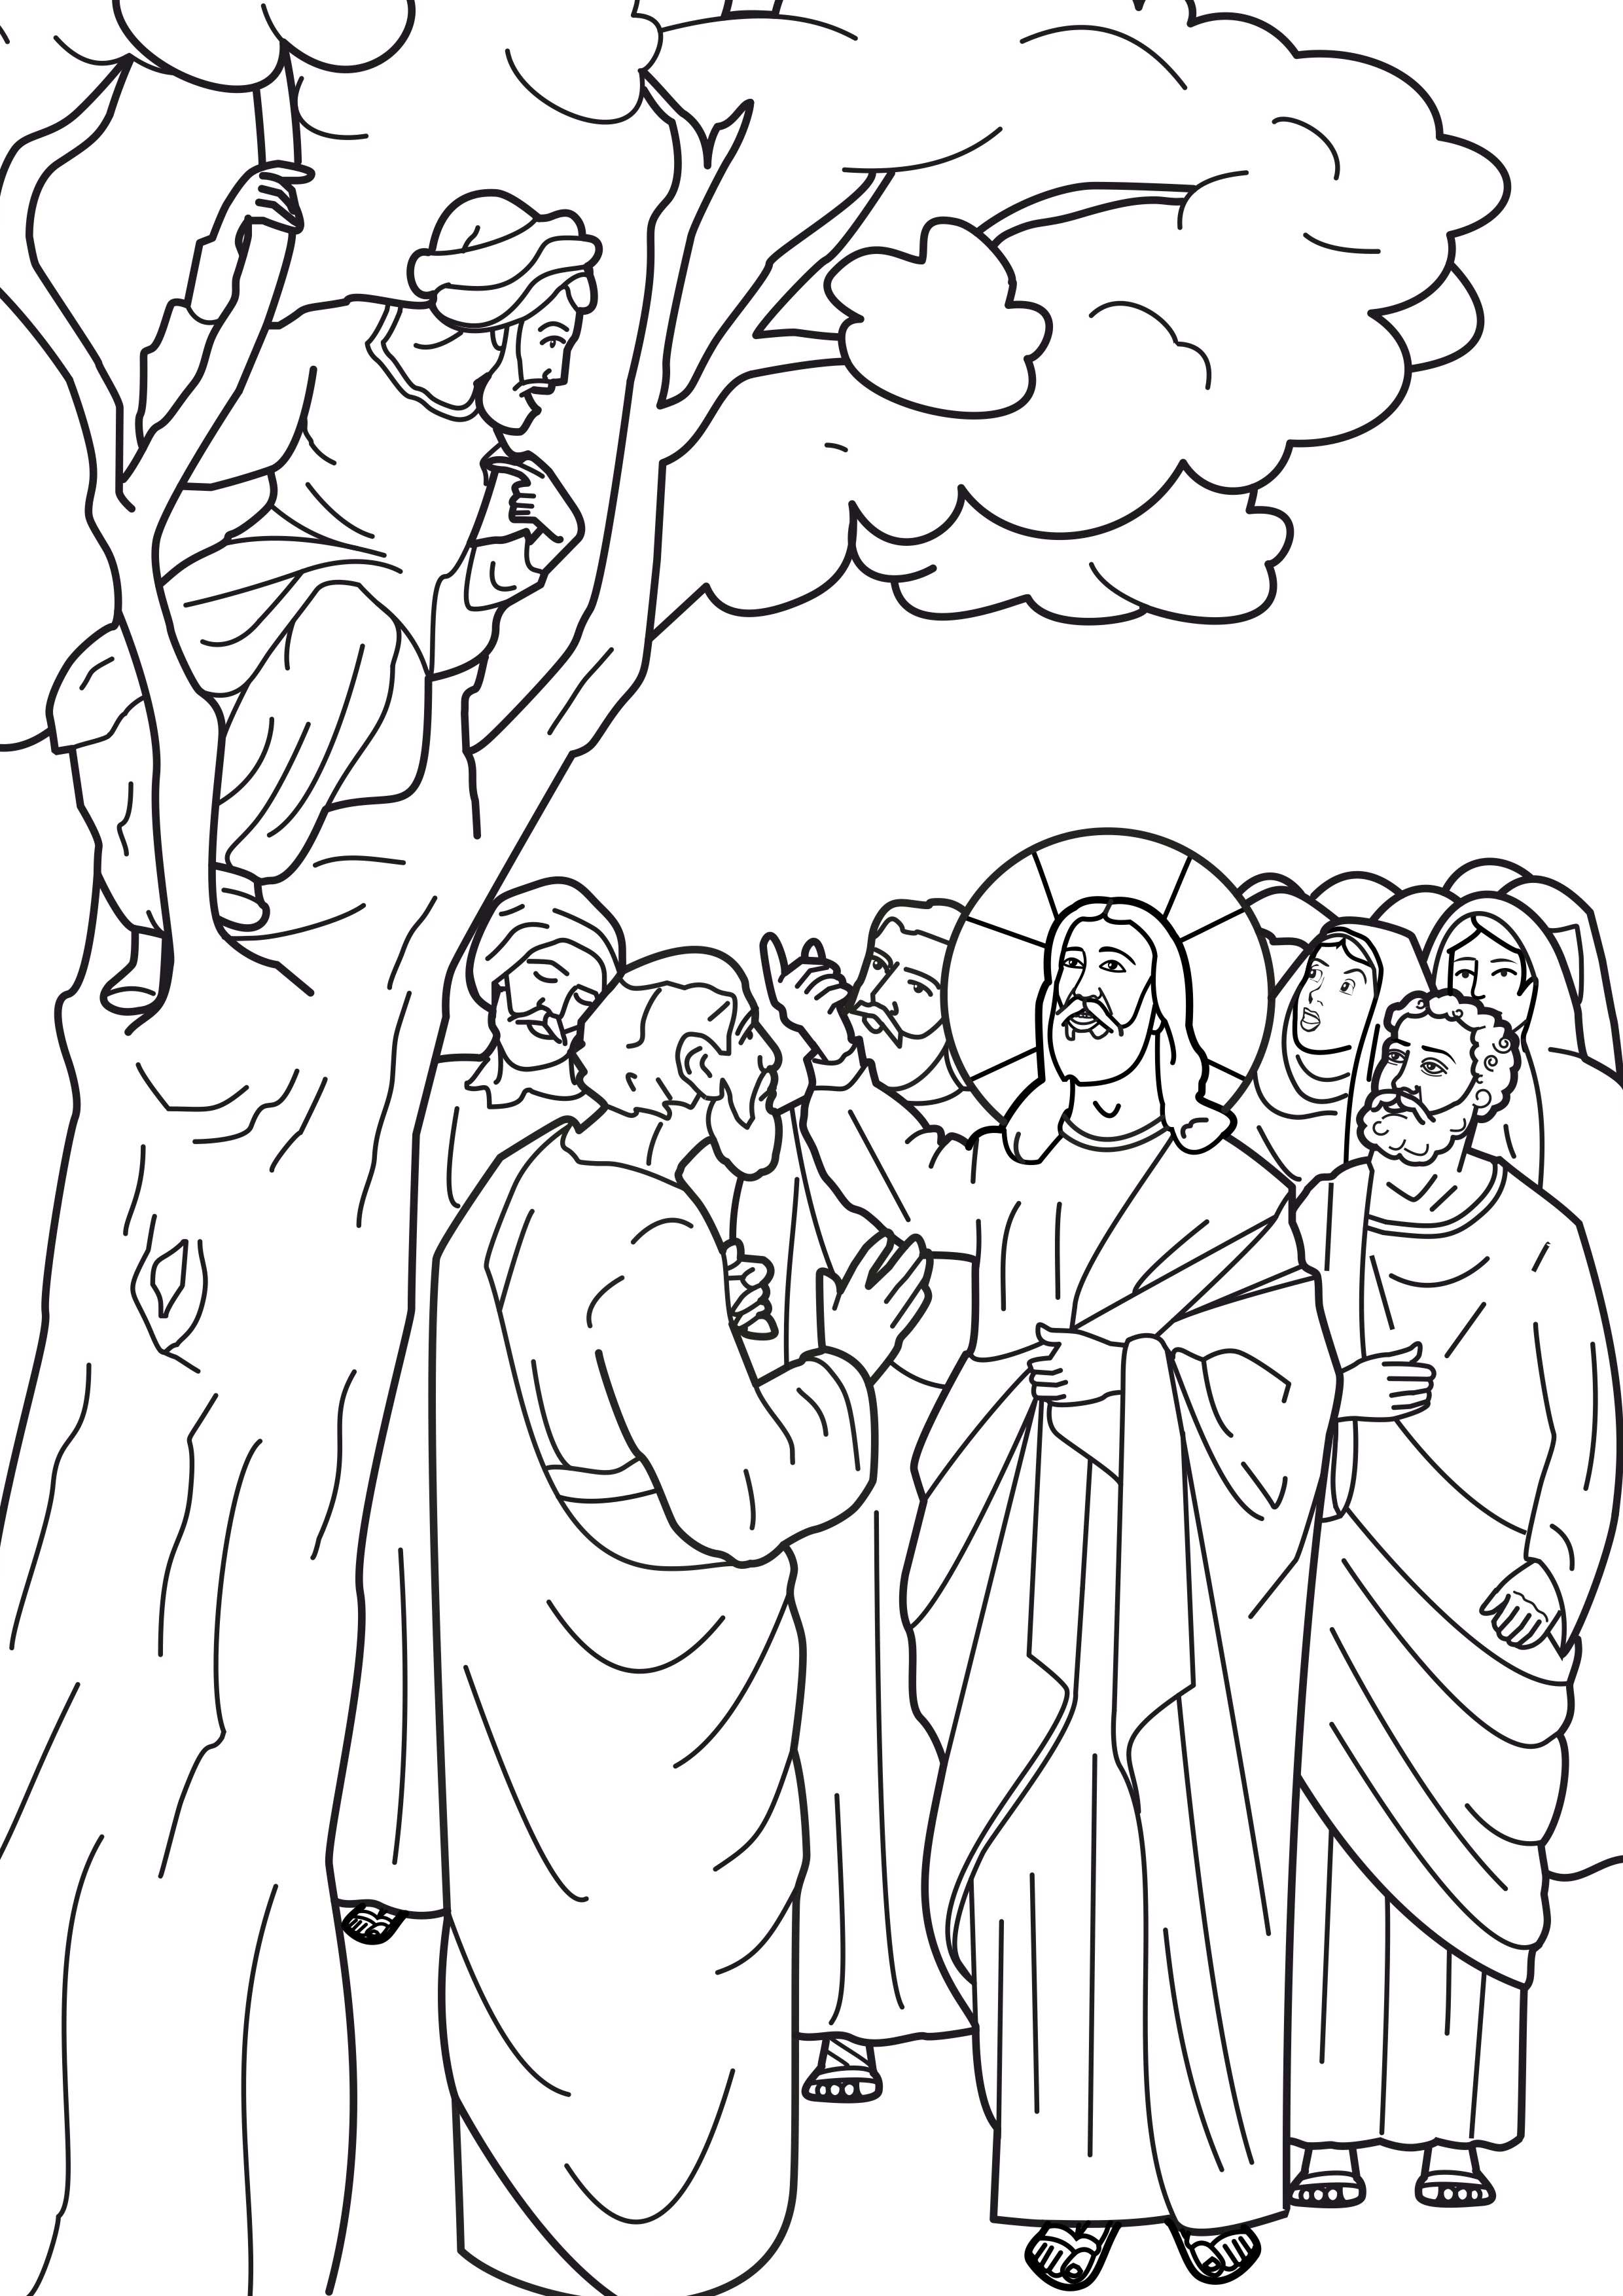 Free coloring pages of zacchaeus in a tree